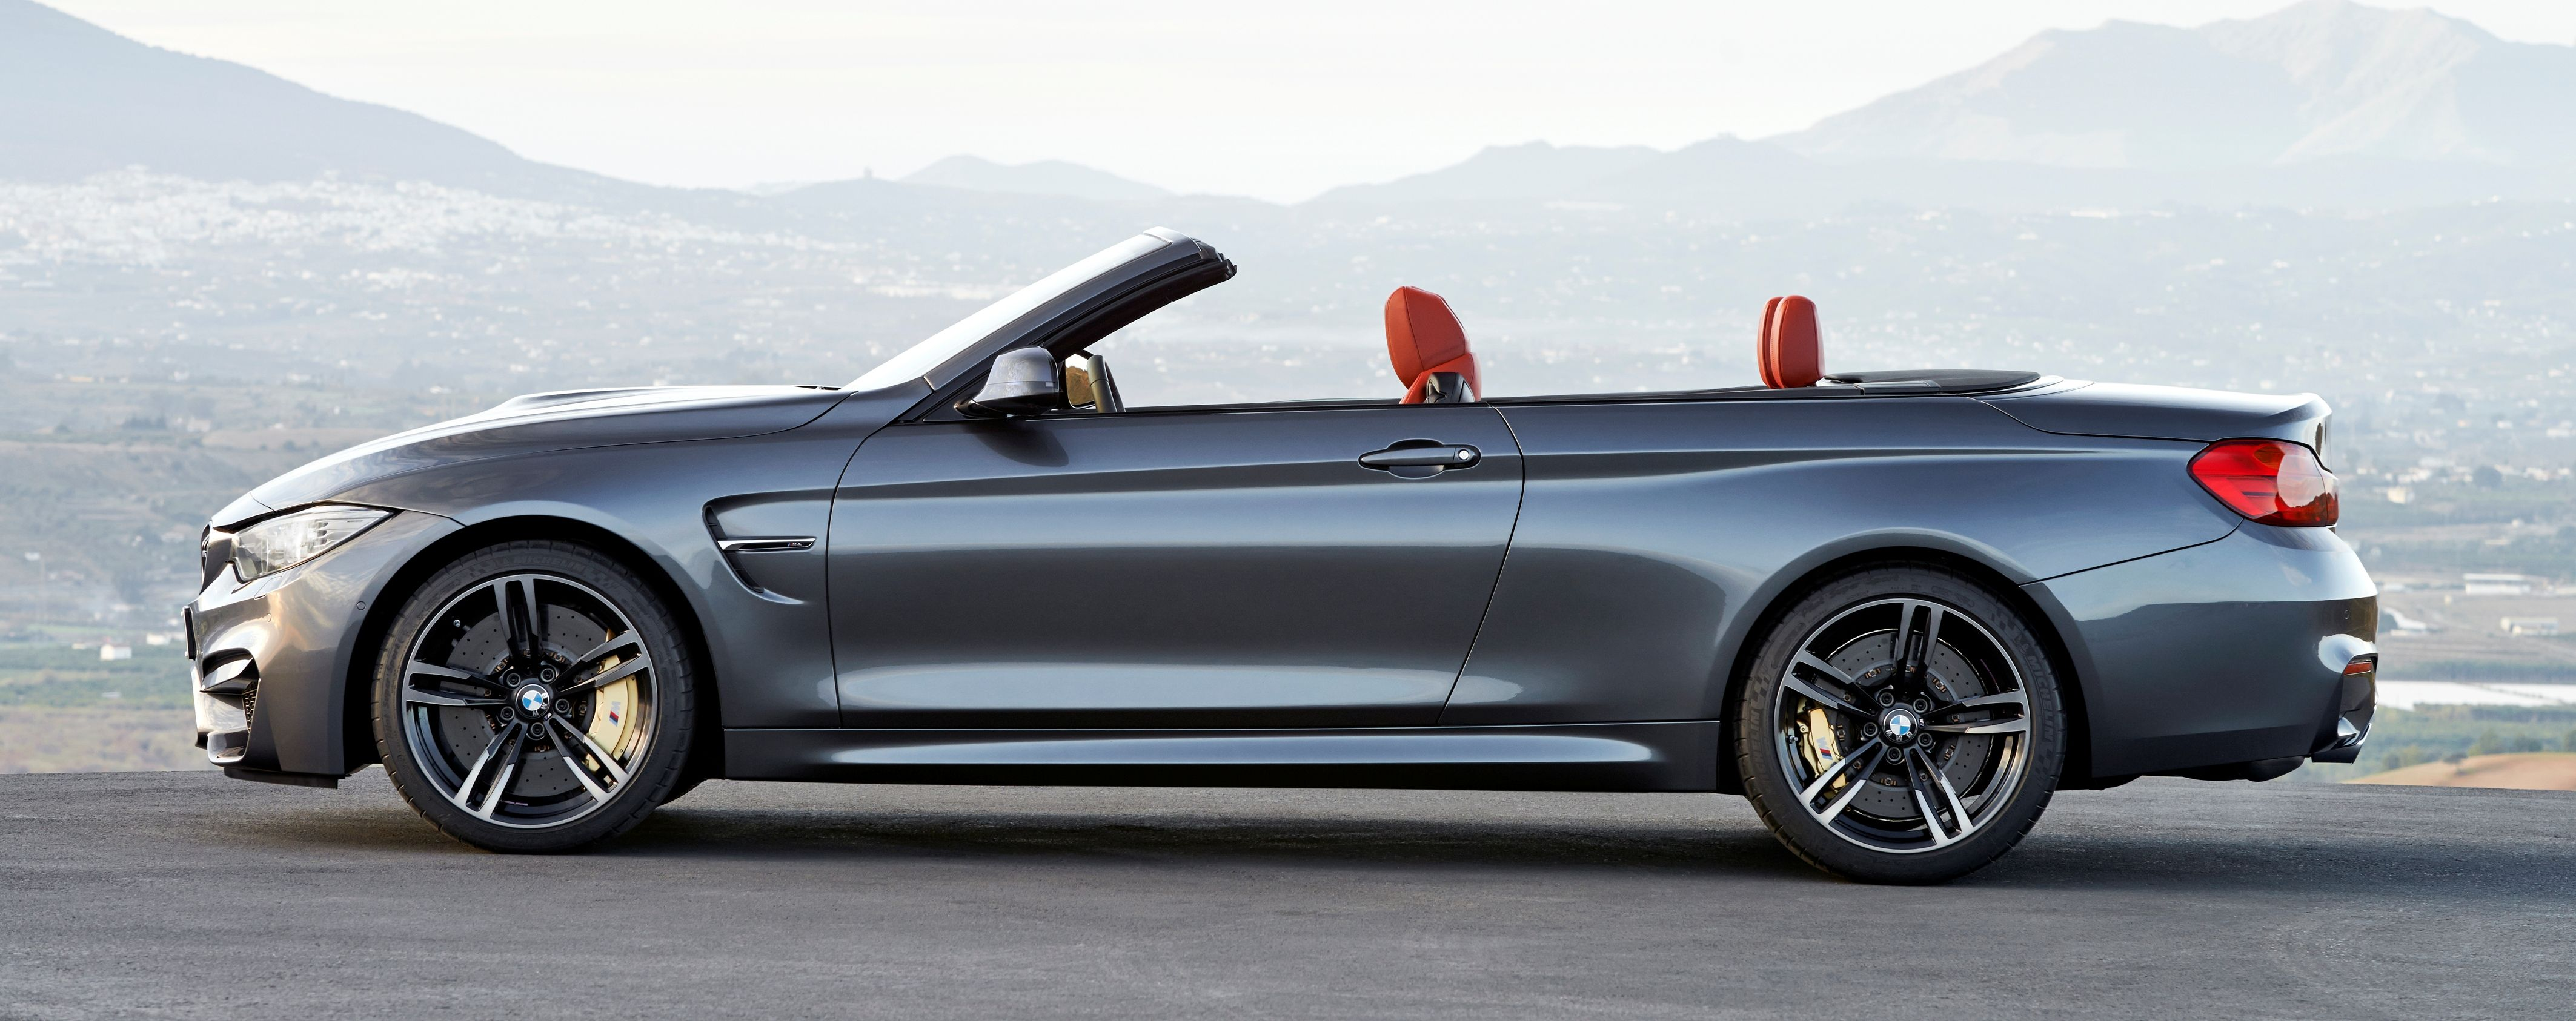 4 2s 425hp 2015 Bmw M4 Convertible Full Details 39 Photos Of Wide Track Menace Arrival To Us Buyers By Late August 2014 Car Revs Daily Com In 2020 Bmw M4 Bmw 2015 Bmw M4